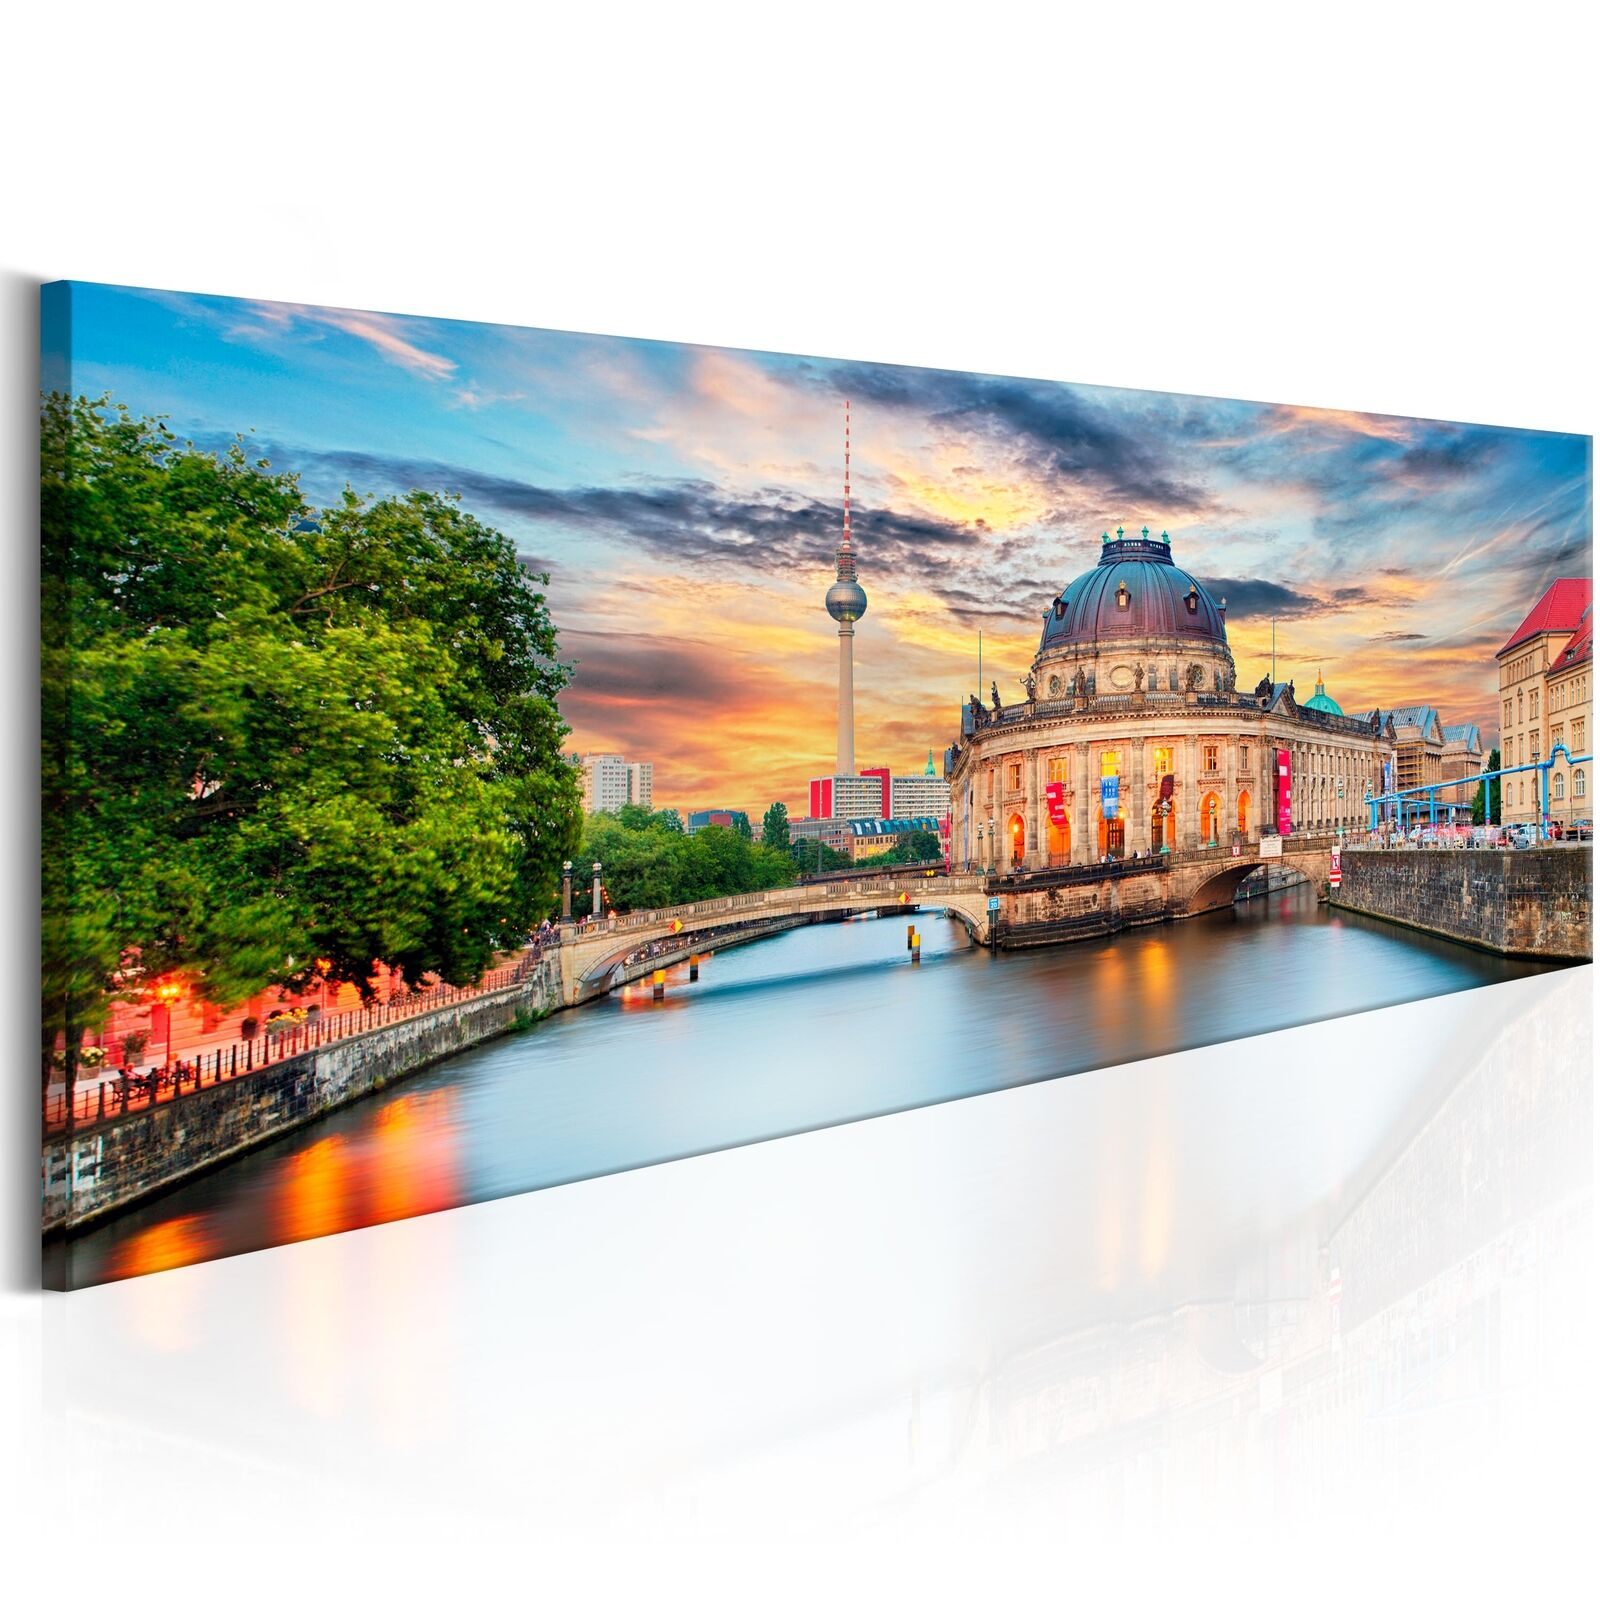 leinwand bilder xxl kunstdruck wandbild berlin fernesehturm stadt d b 0163 b a eur 26 90. Black Bedroom Furniture Sets. Home Design Ideas